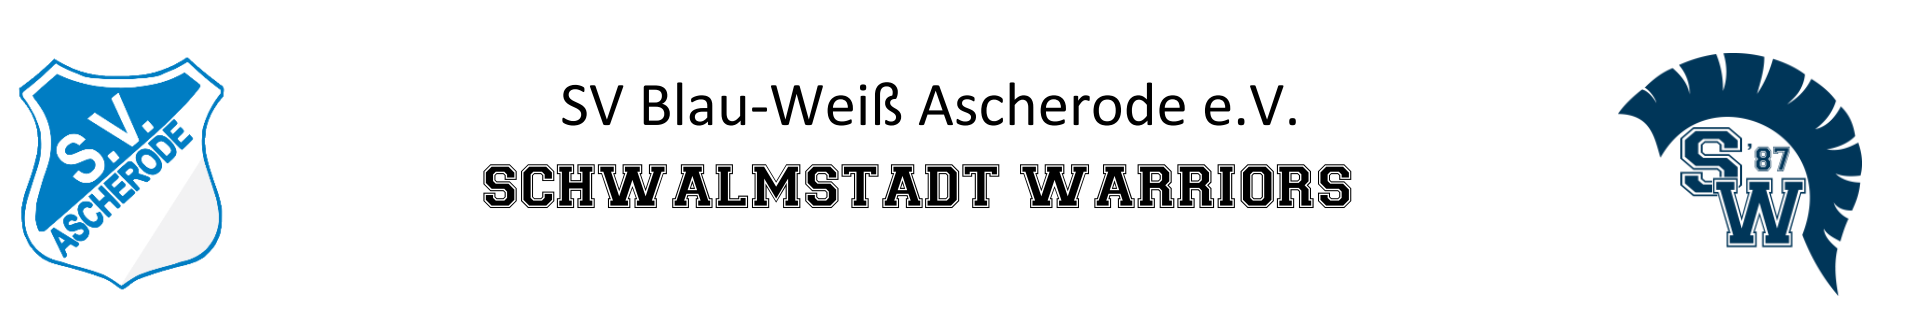 Schwalmstadt Warriors